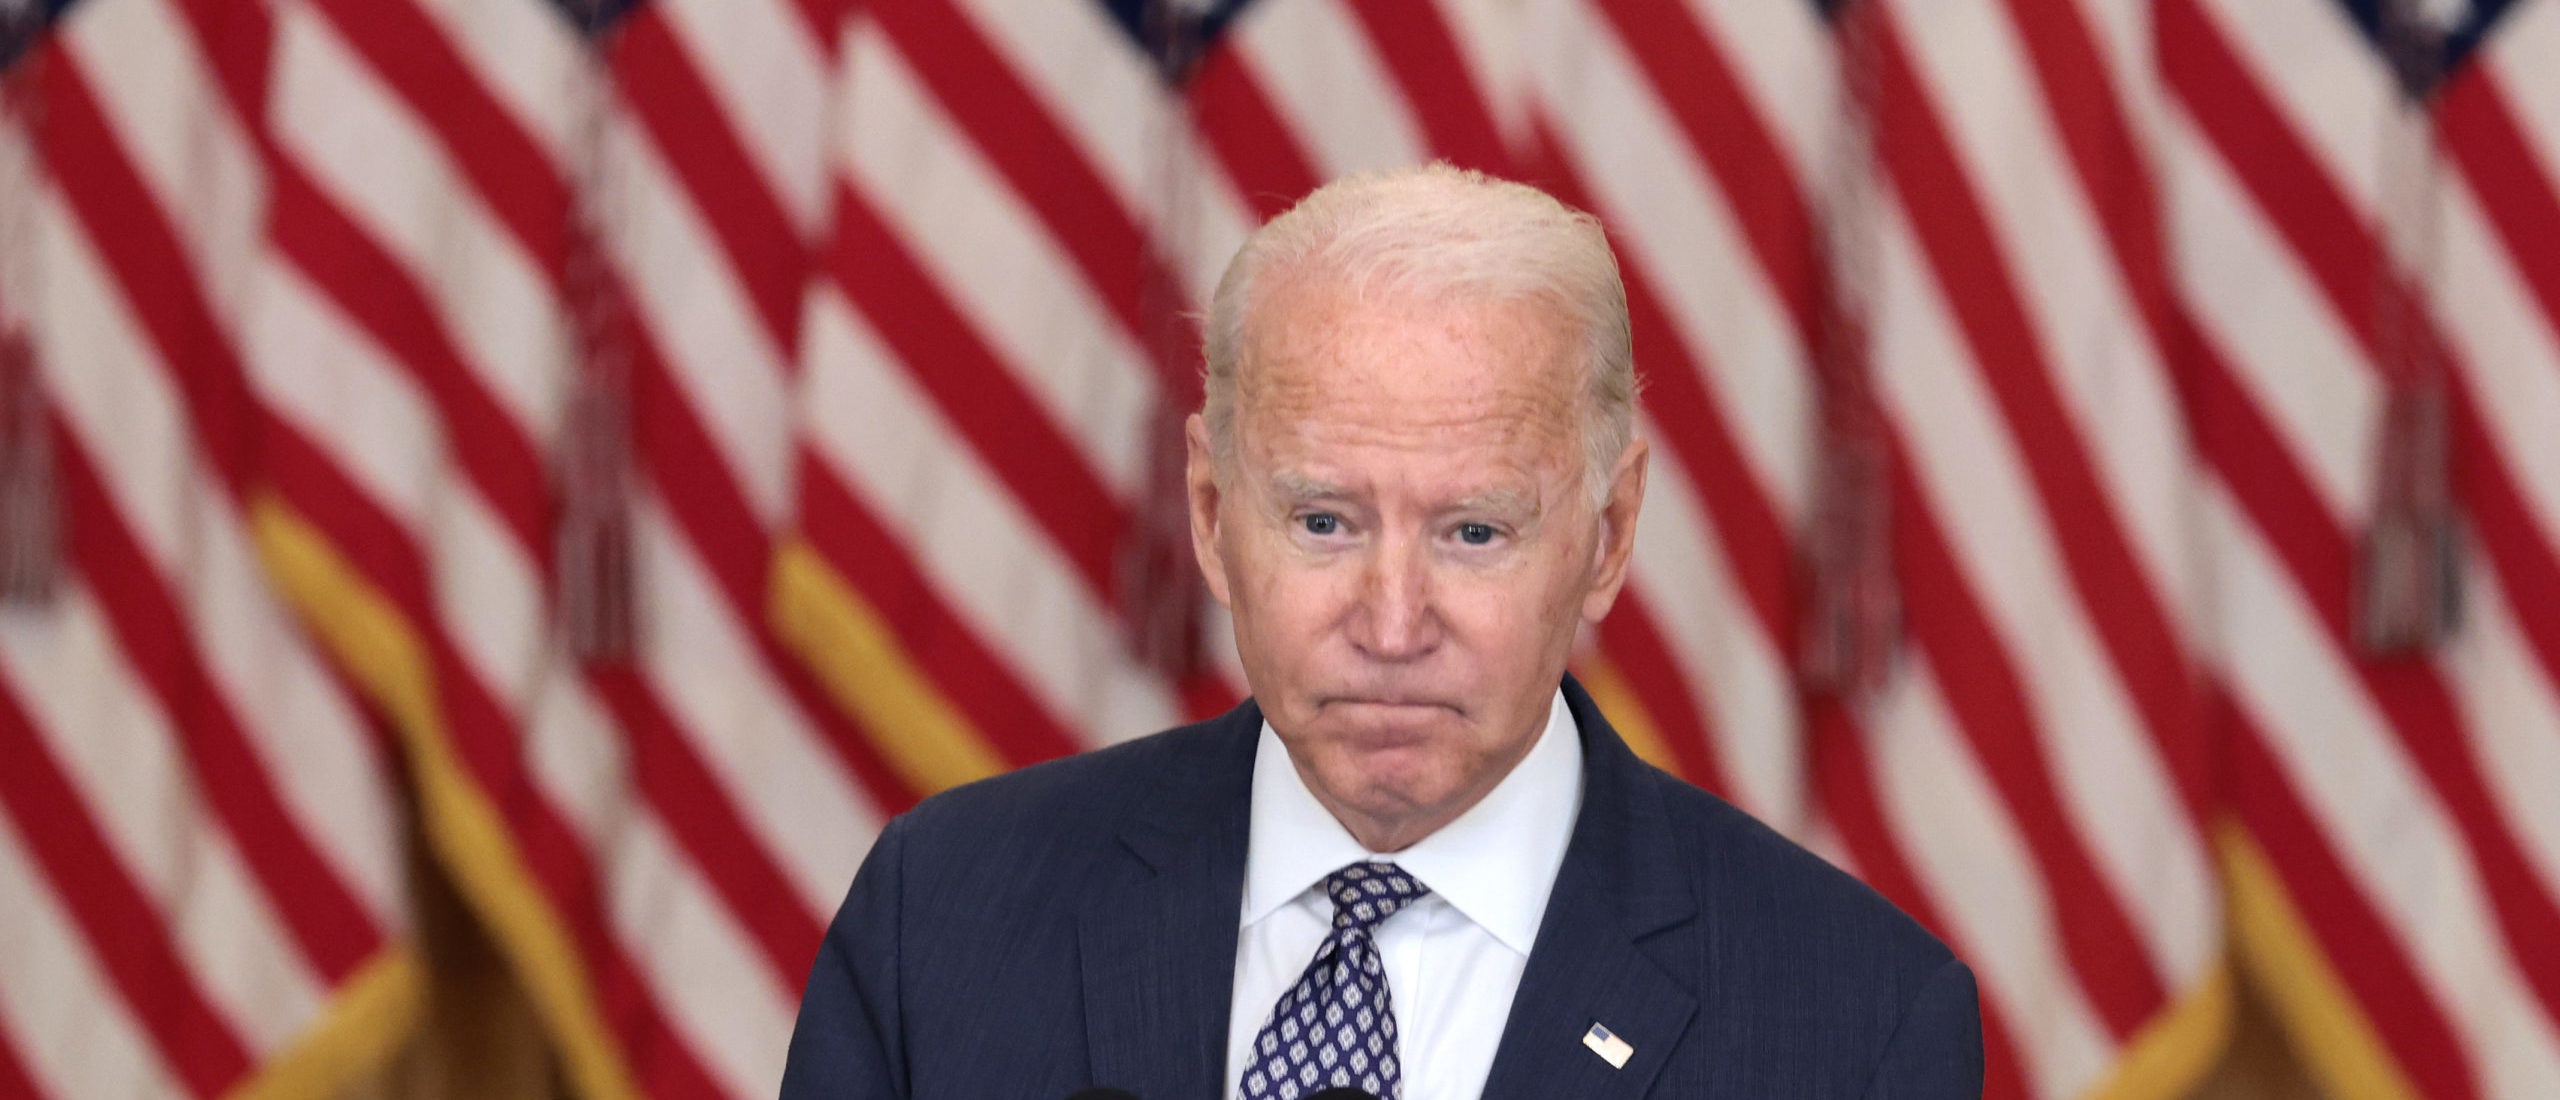 U.S. President Joe Biden gestures as delivers remarks on the U.S. military's ongoing evacuation efforts in Afghanistan from the East Room of the White House on August 20, 2021 in Washington, DC. The White House announced earlier that the U.S. has evacuated almost 14,000 people from Afghanistan since the end of July. (Photo by Anna Moneymaker/Getty Images)